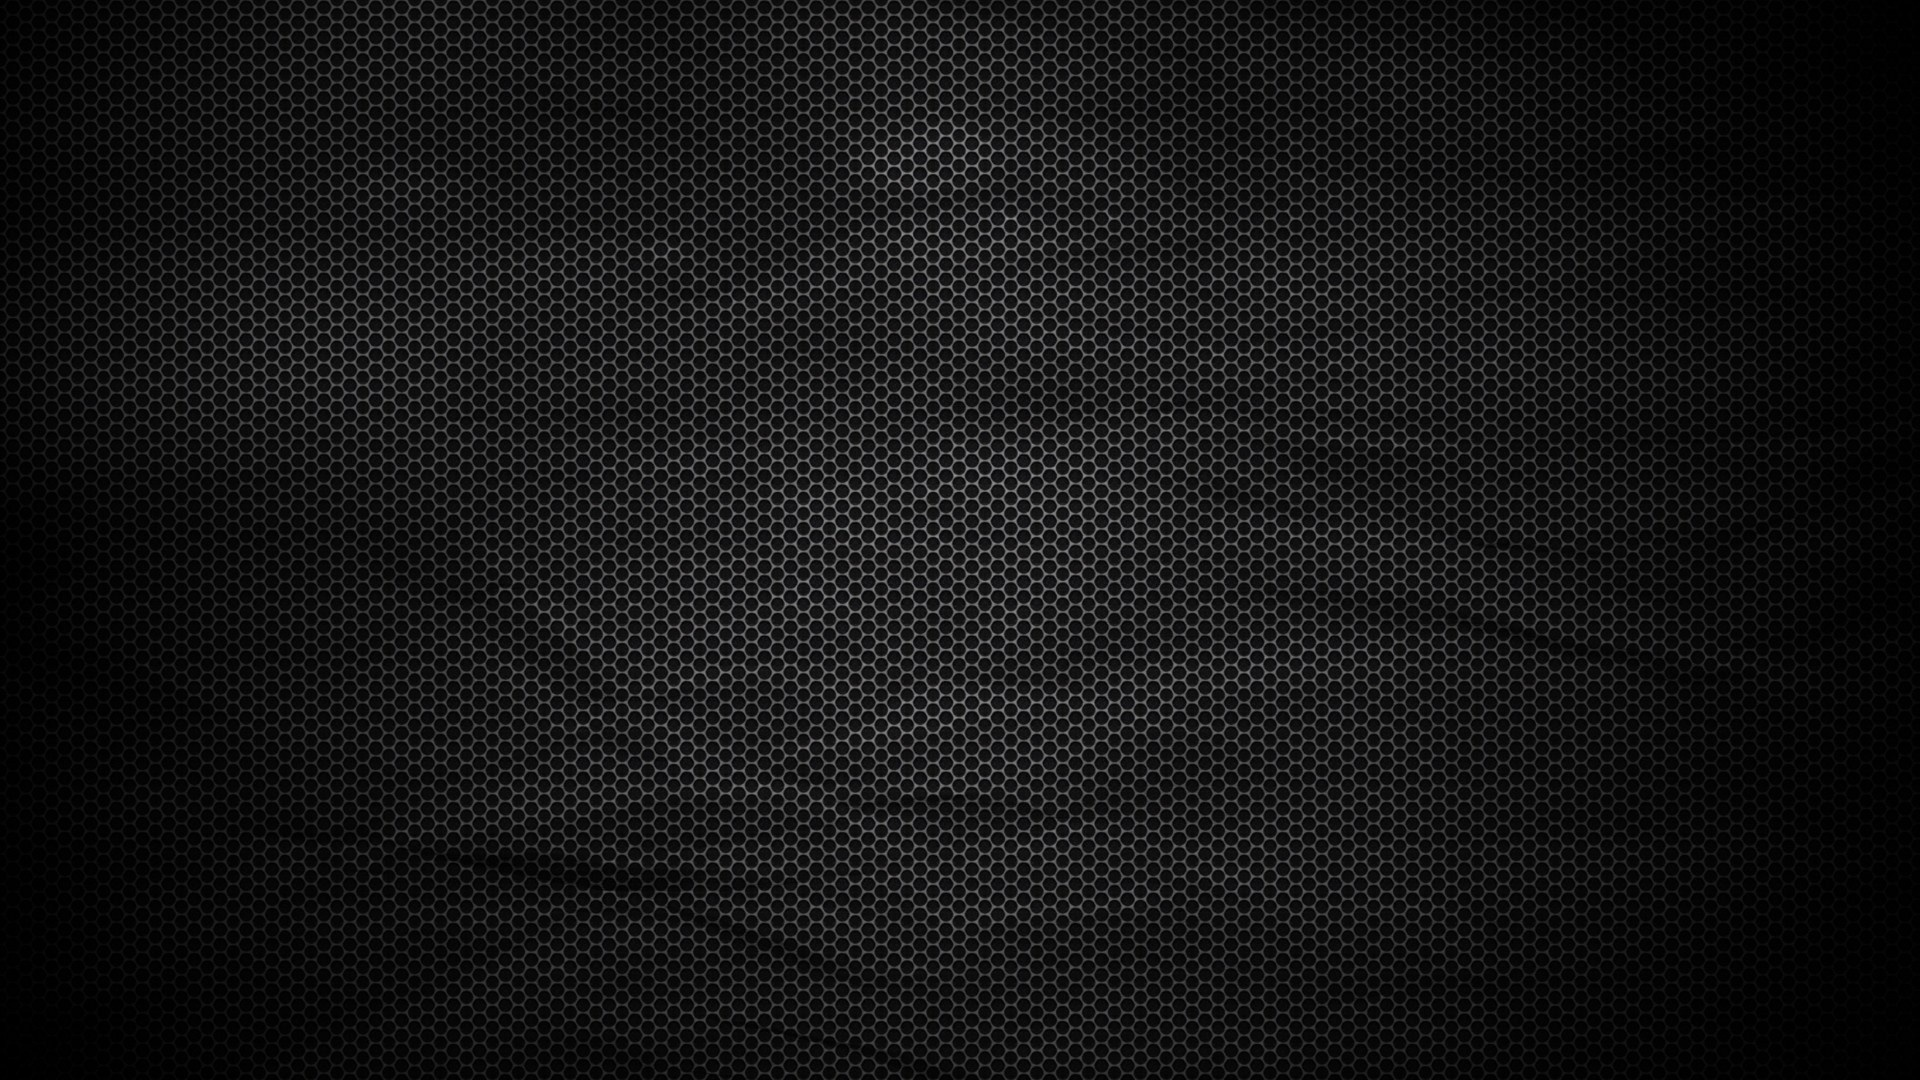 dotted Black Wallpaper